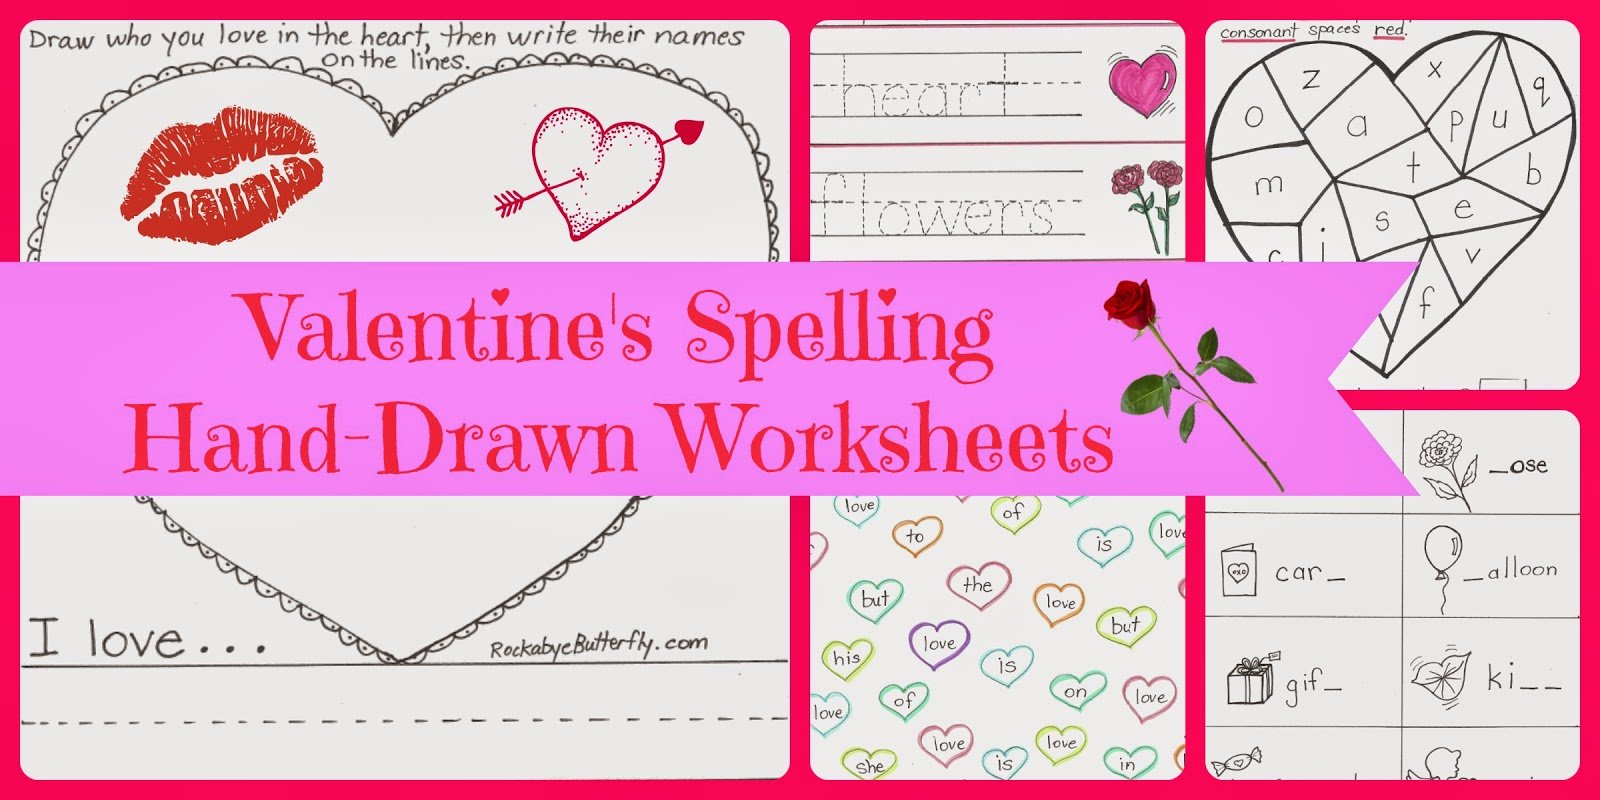 http://www.teacherspayteachers.com/Product/Valentines-Spelling-Hand-Drawn-Worksheets-1085663